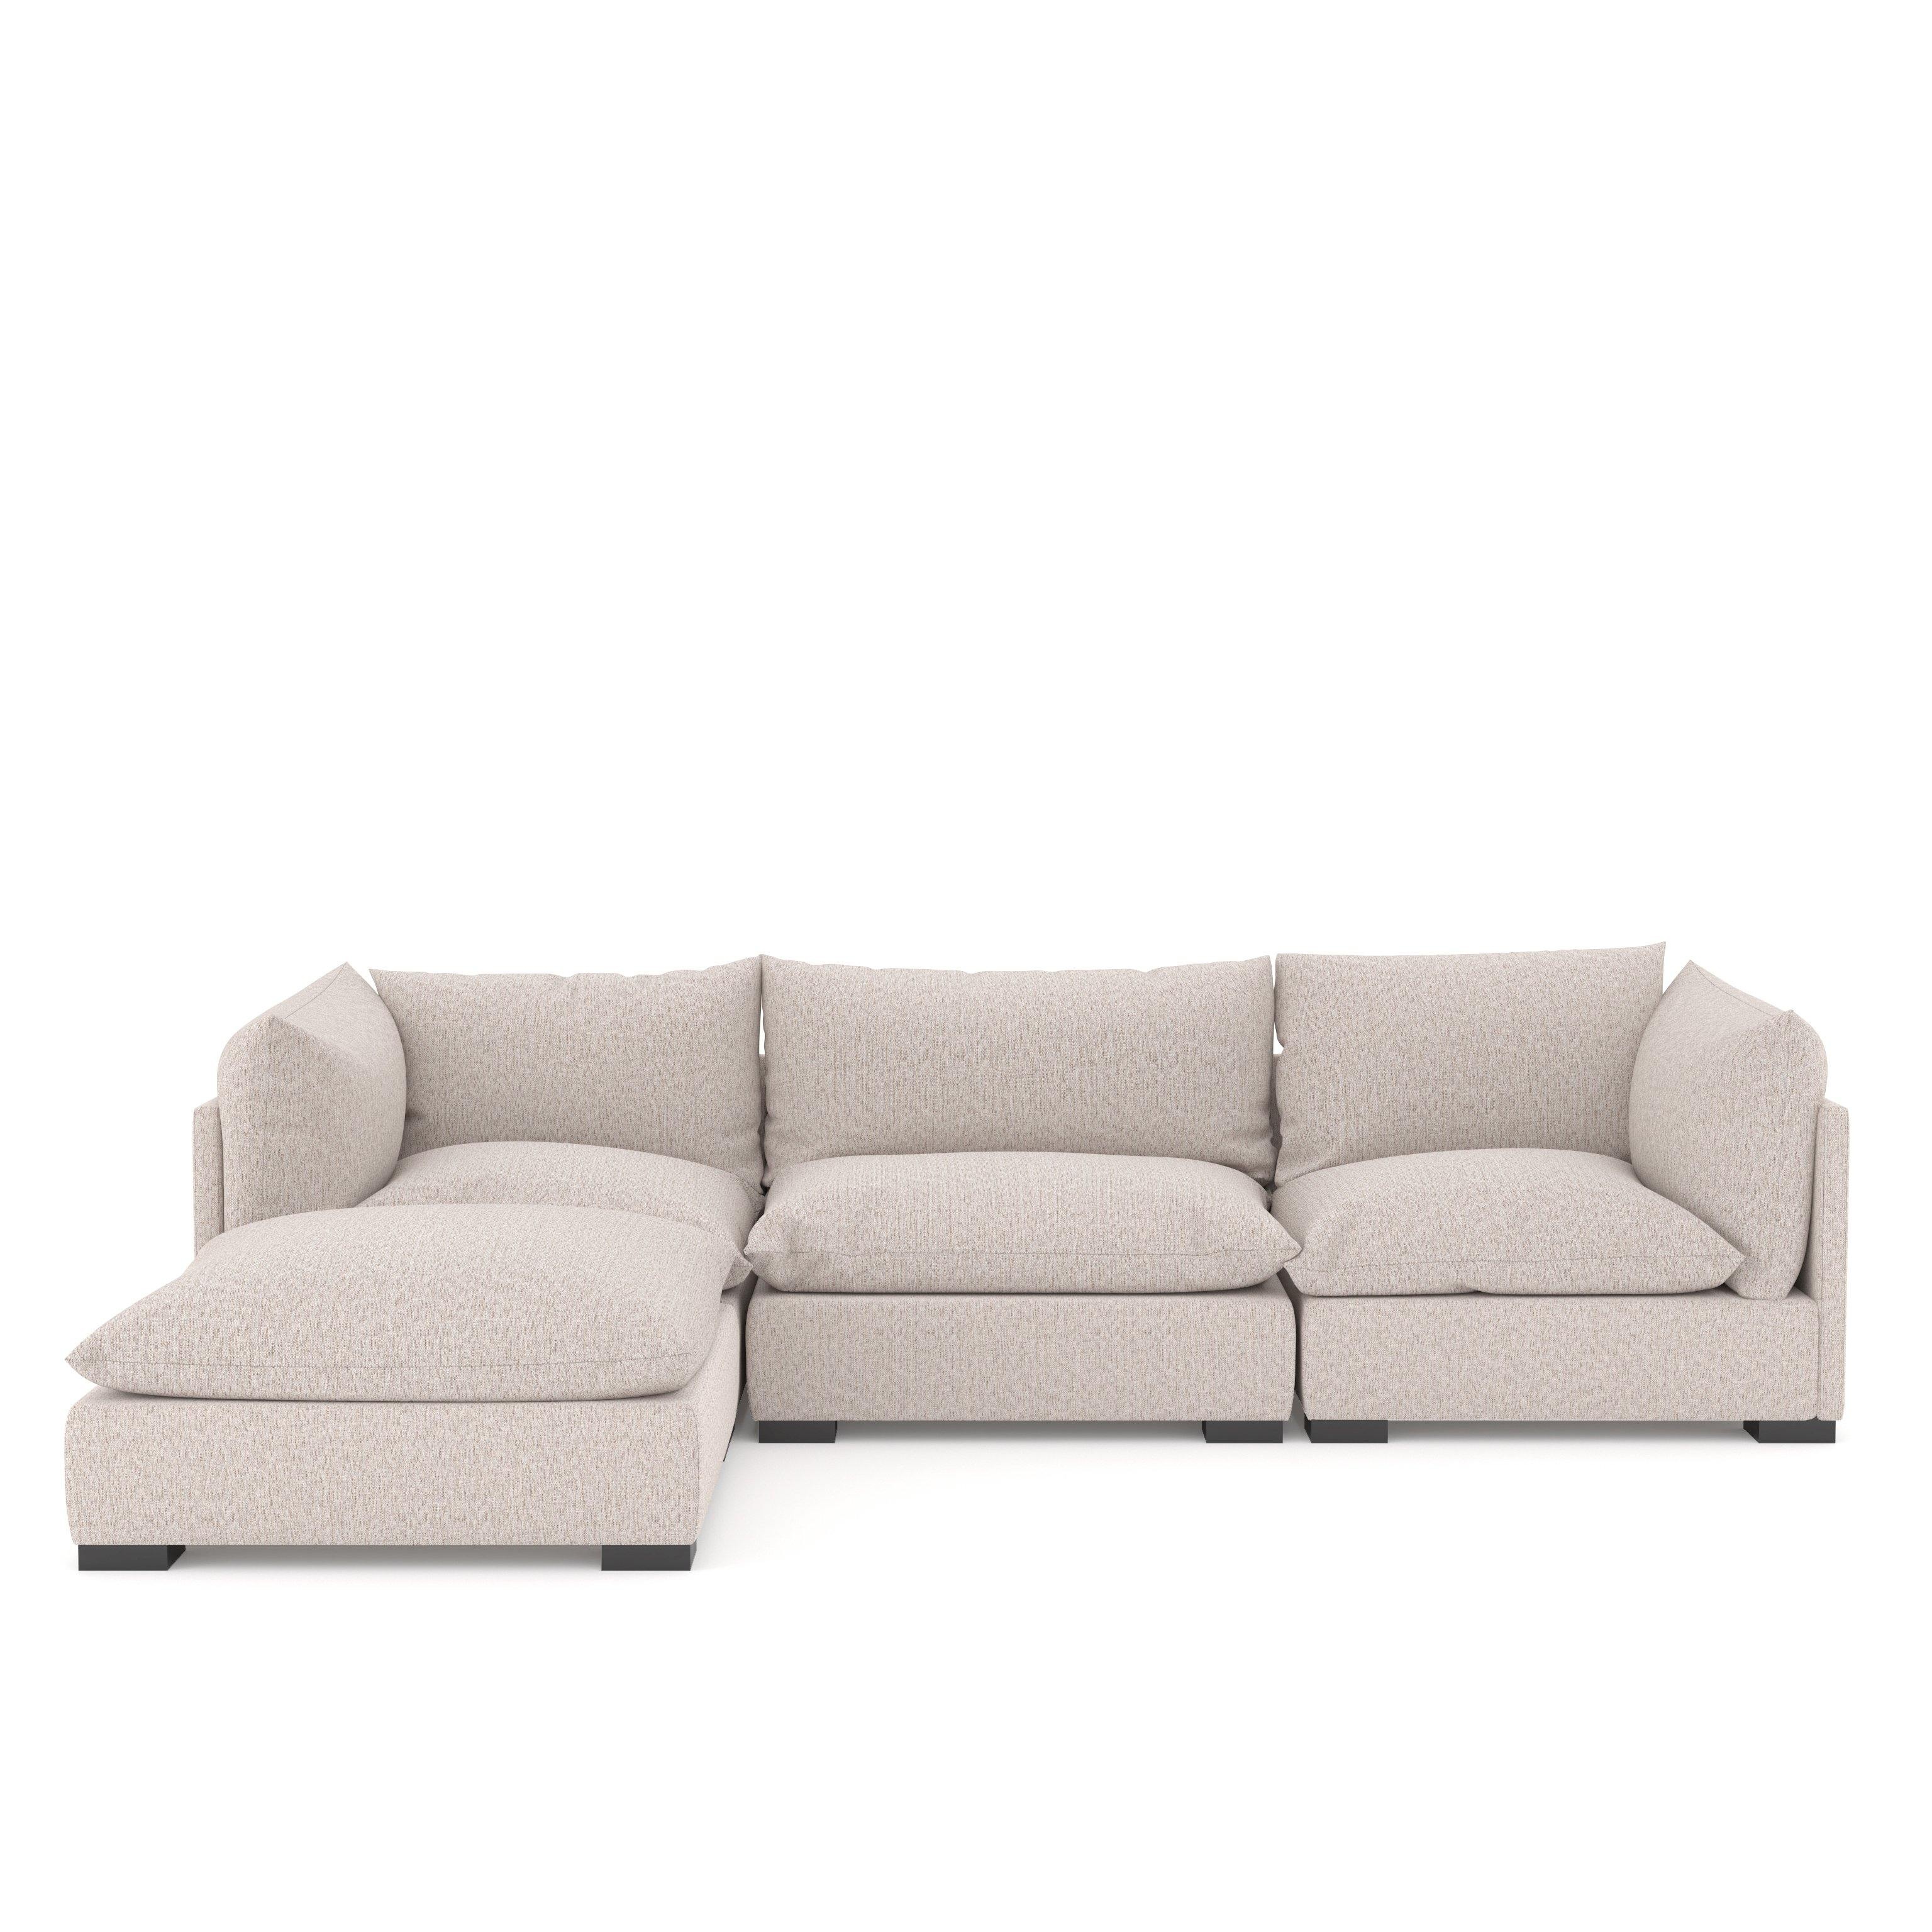 Westwood 3-Piece Sectional w/ Ottoman in Pebble - Reimagine Designs